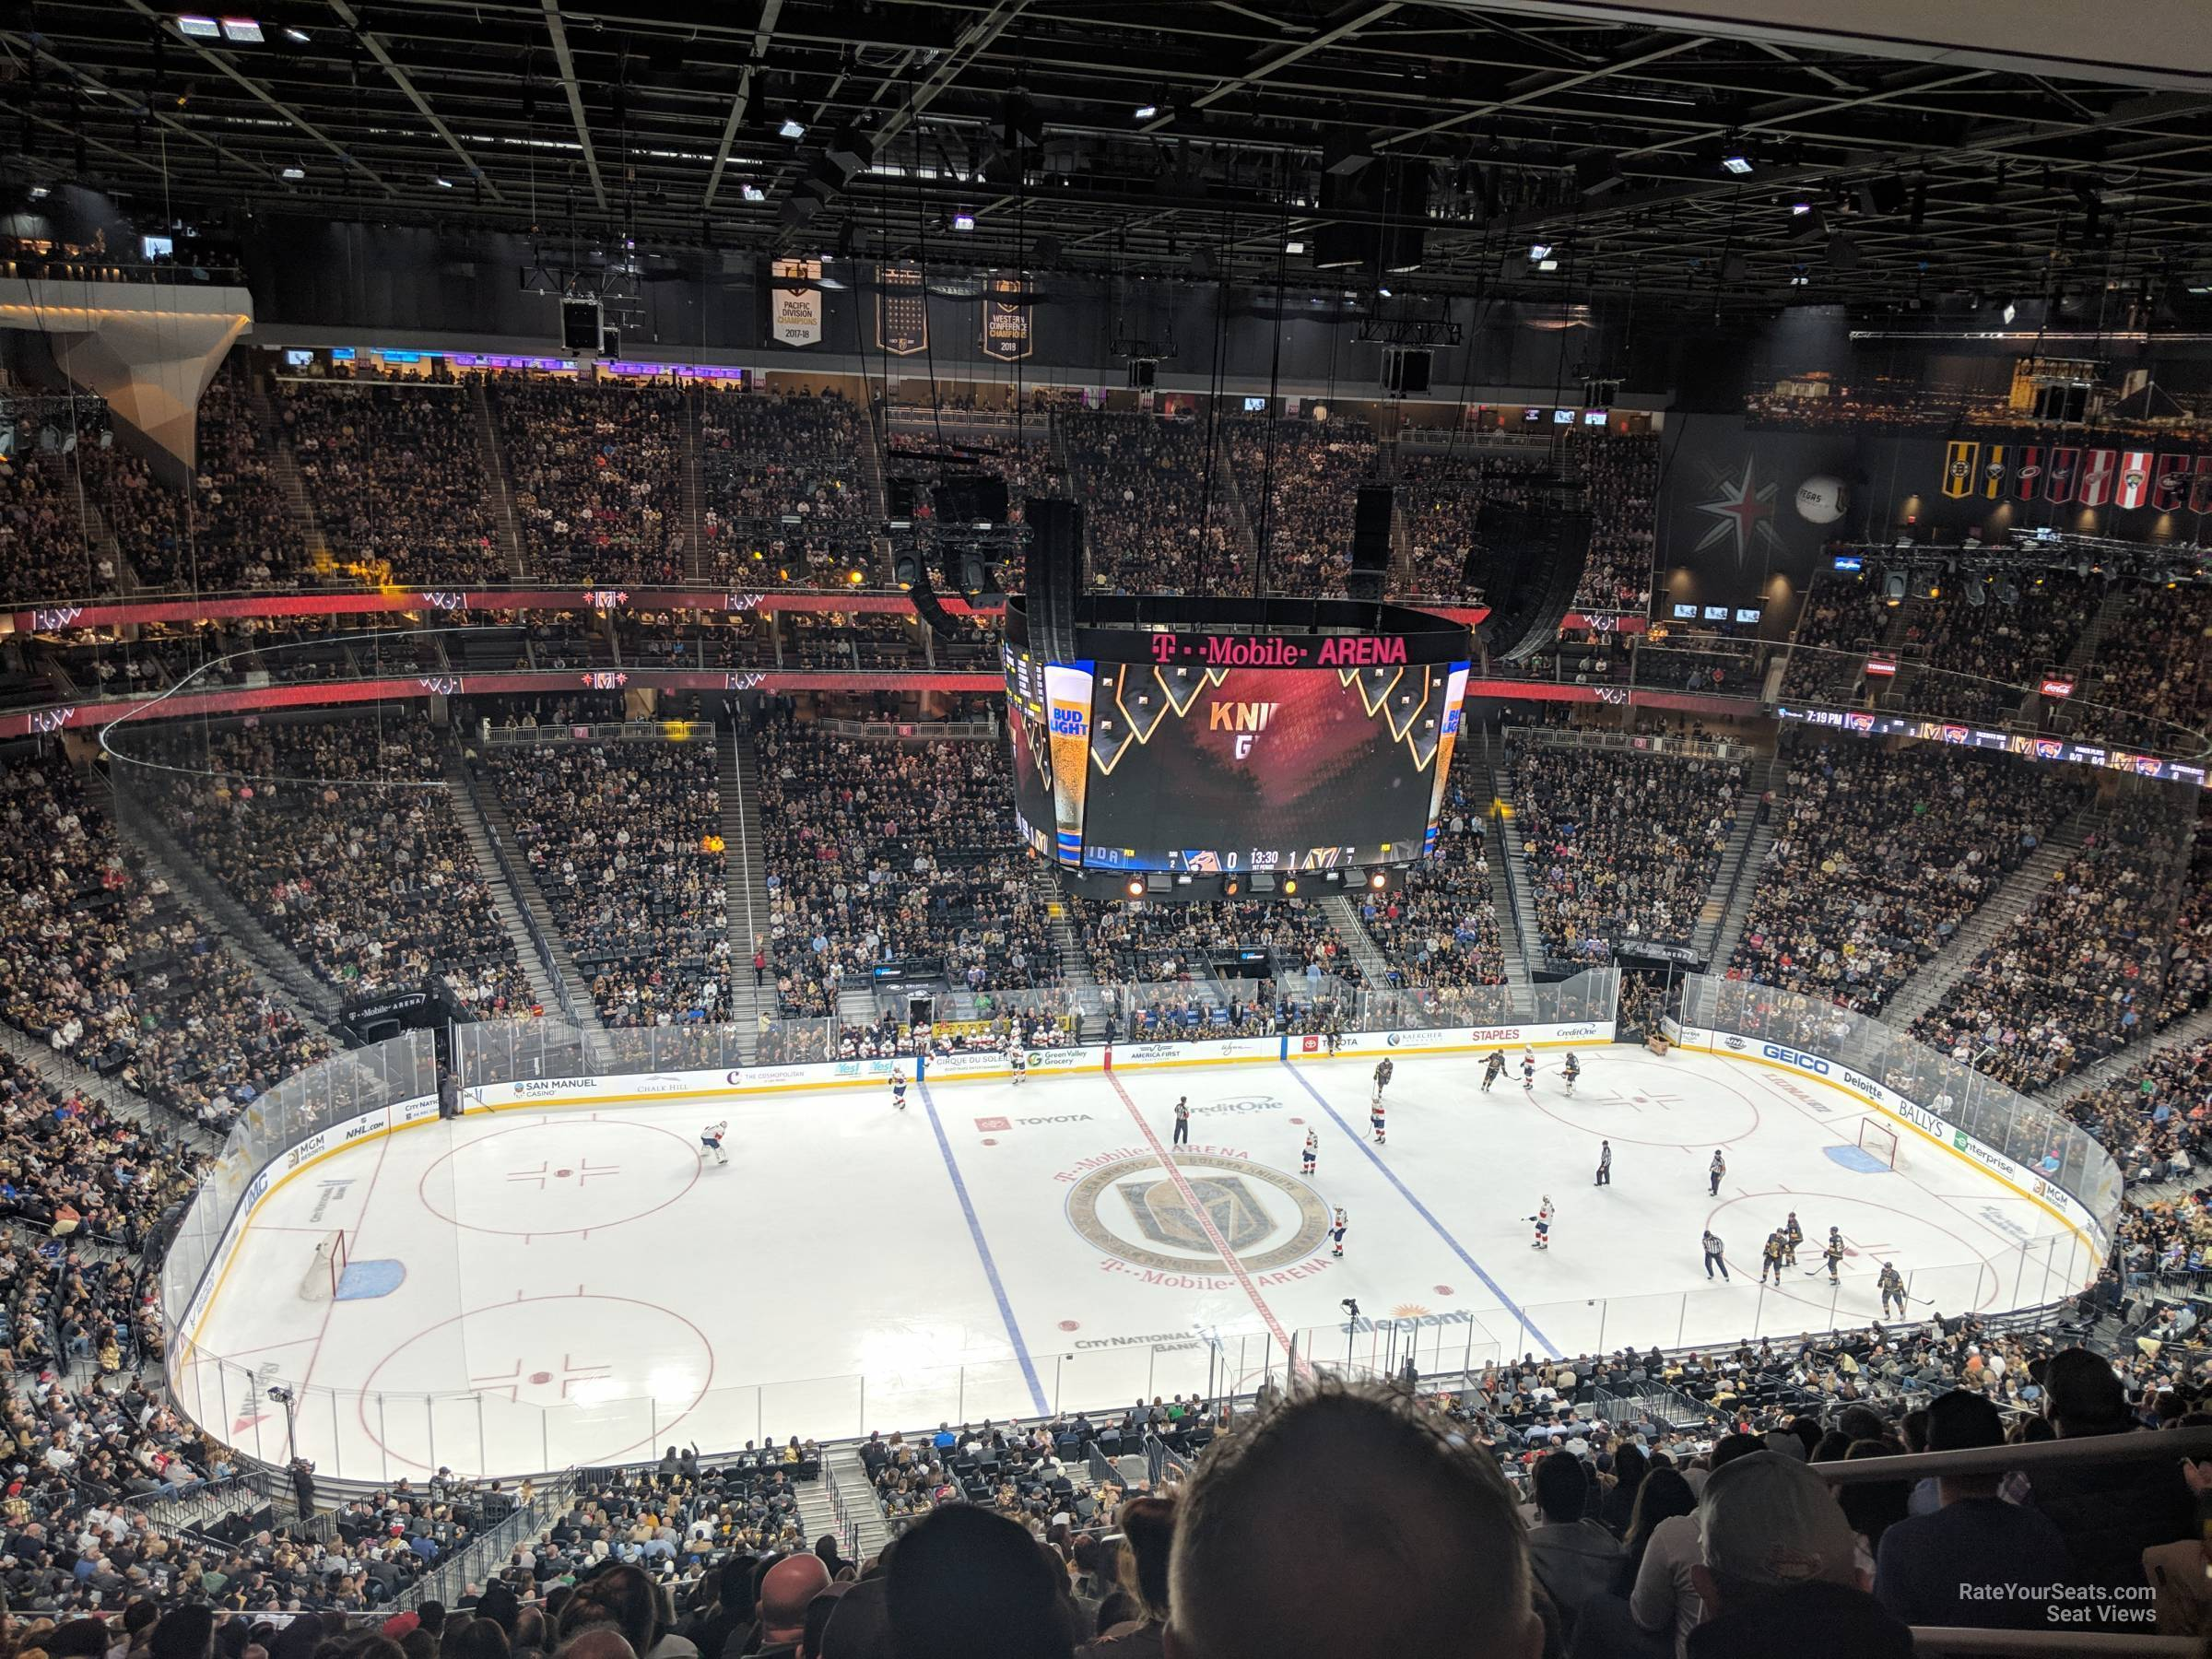 Section 221 At T Mobile Arena Vegas Golden Knights